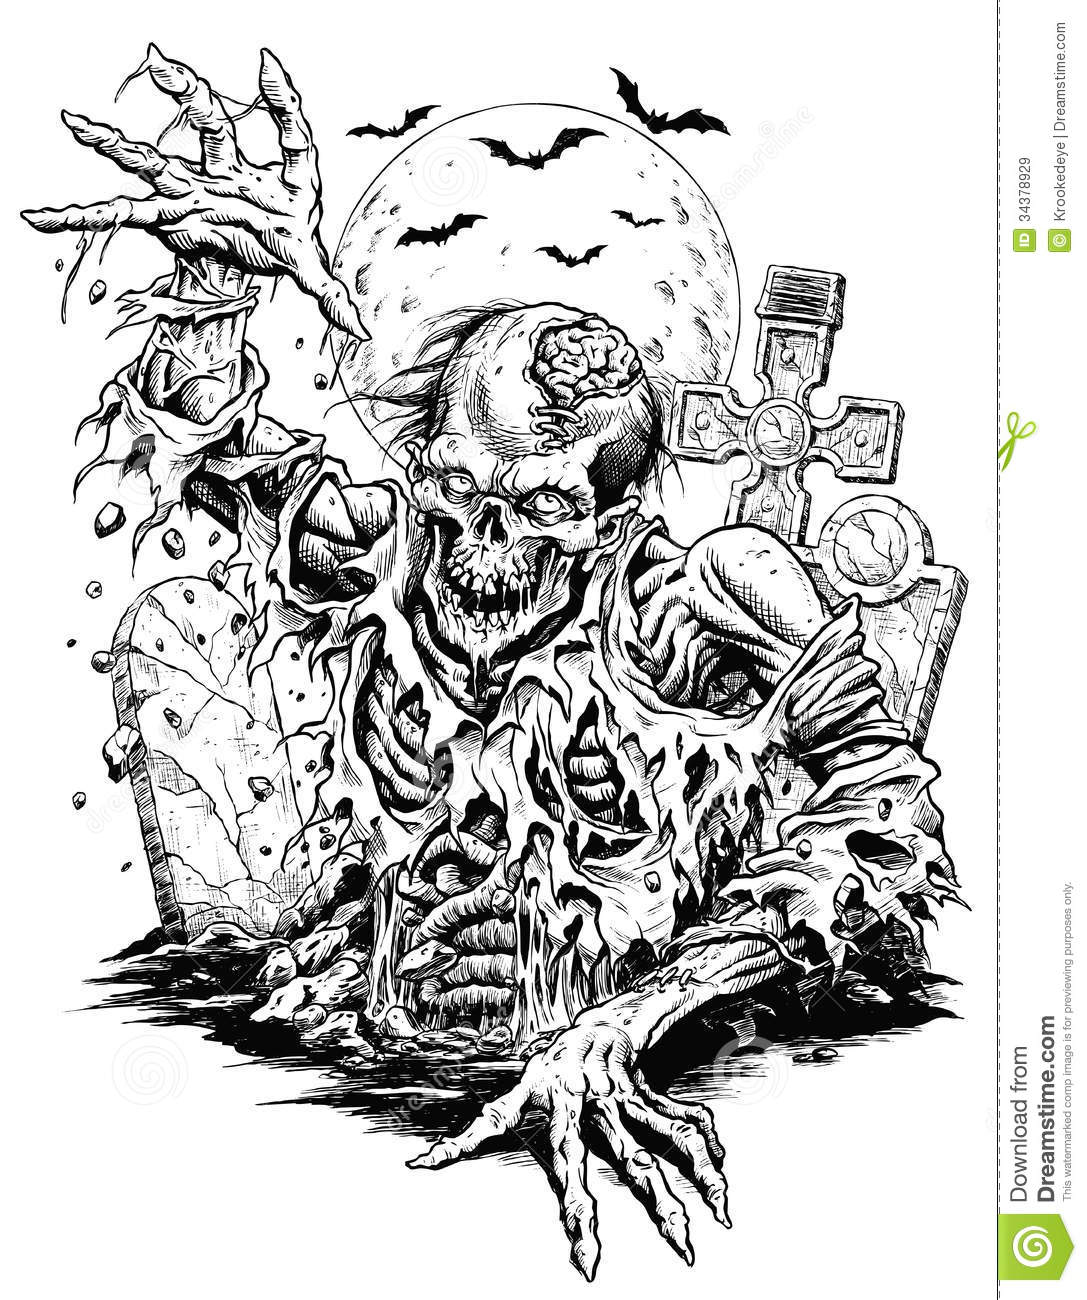 Line Art Comic : Zombie comic line art royalty free stock images image